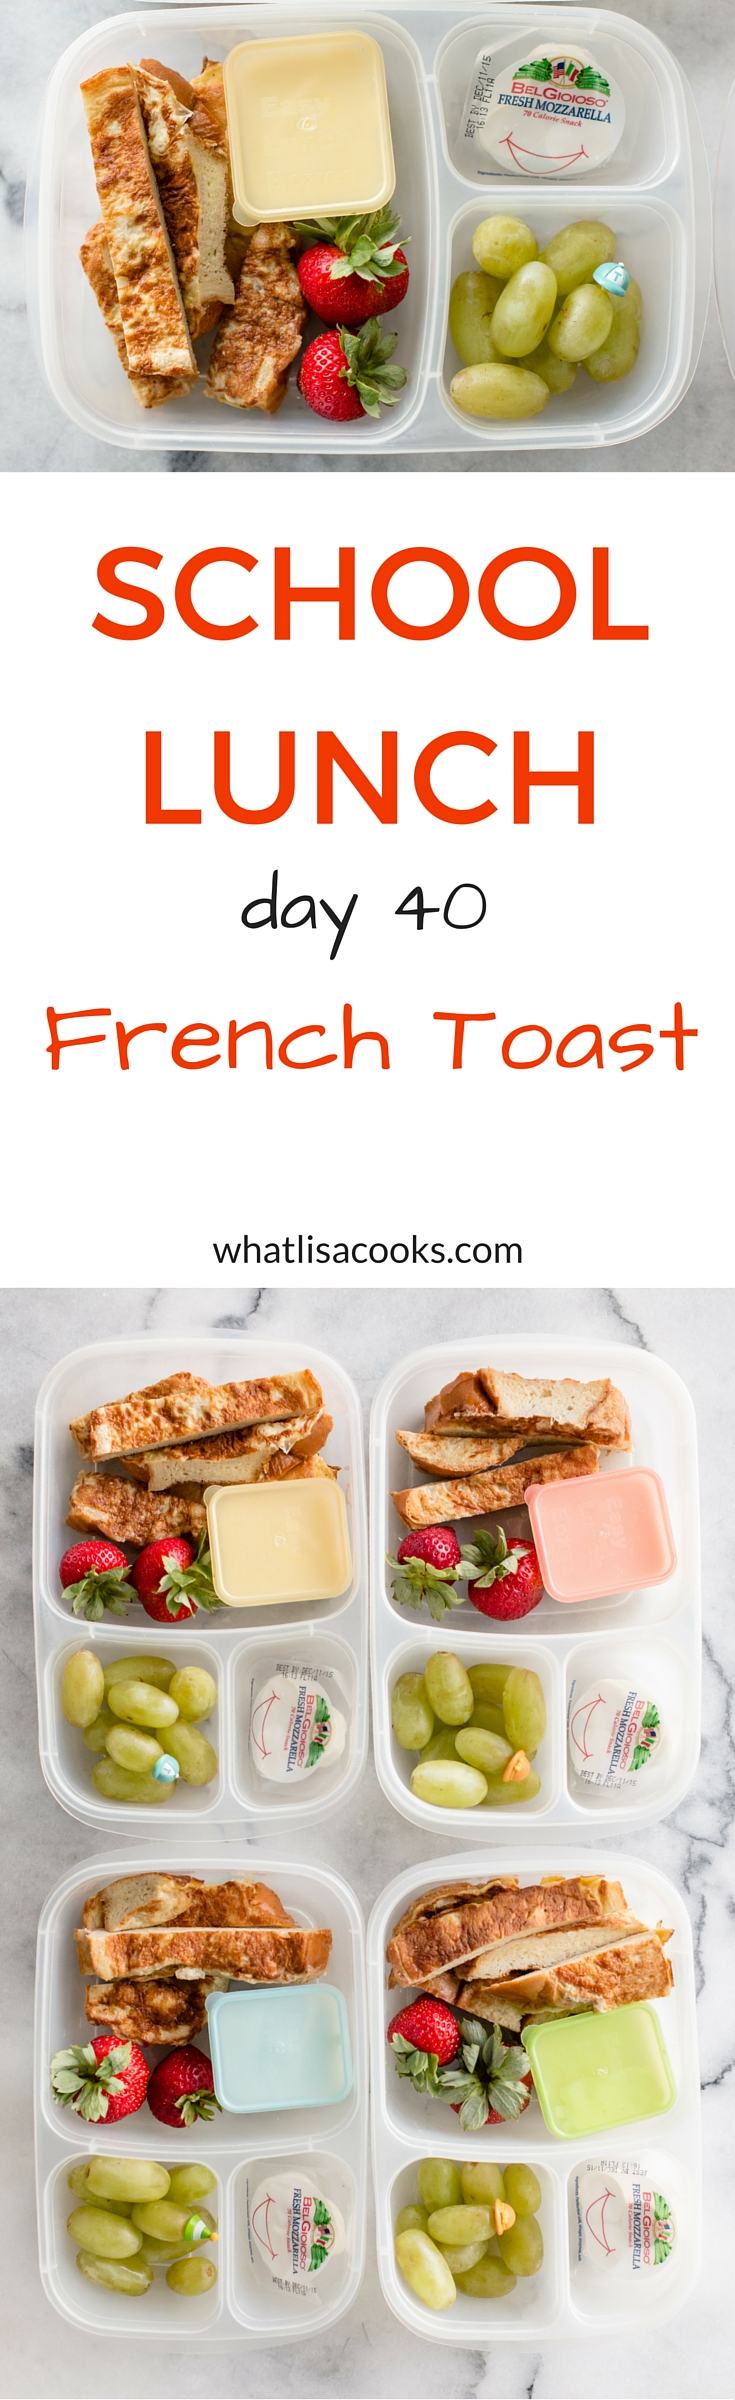 Give them breakfast for school lunch! An easy school lunch of French toast sticks from WhatLisaCooks.com